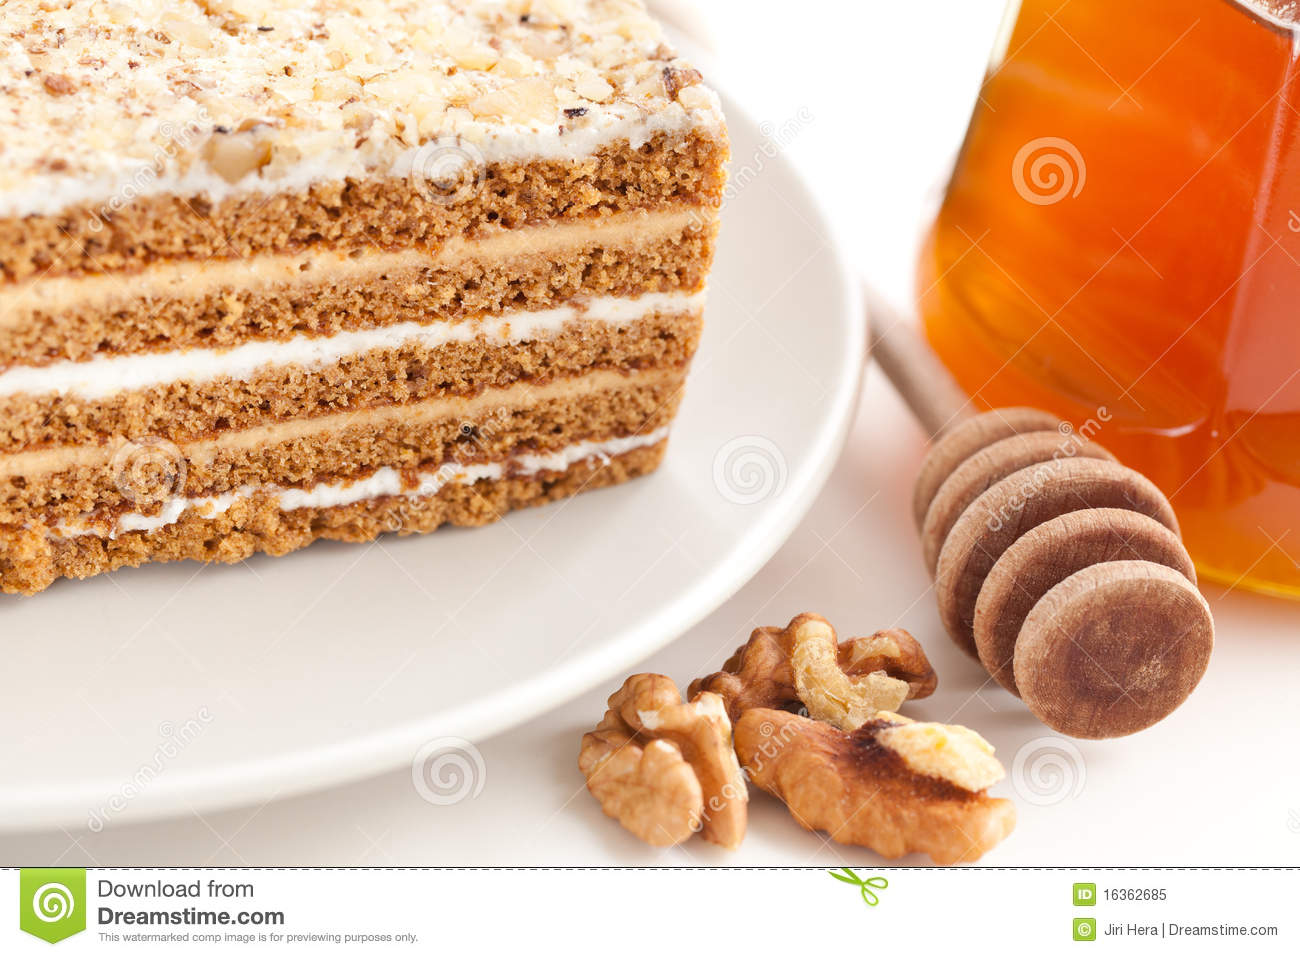 Clipart Of Honey Cake : Honey Cake Royalty Free Stock Photo - Image: 16362685